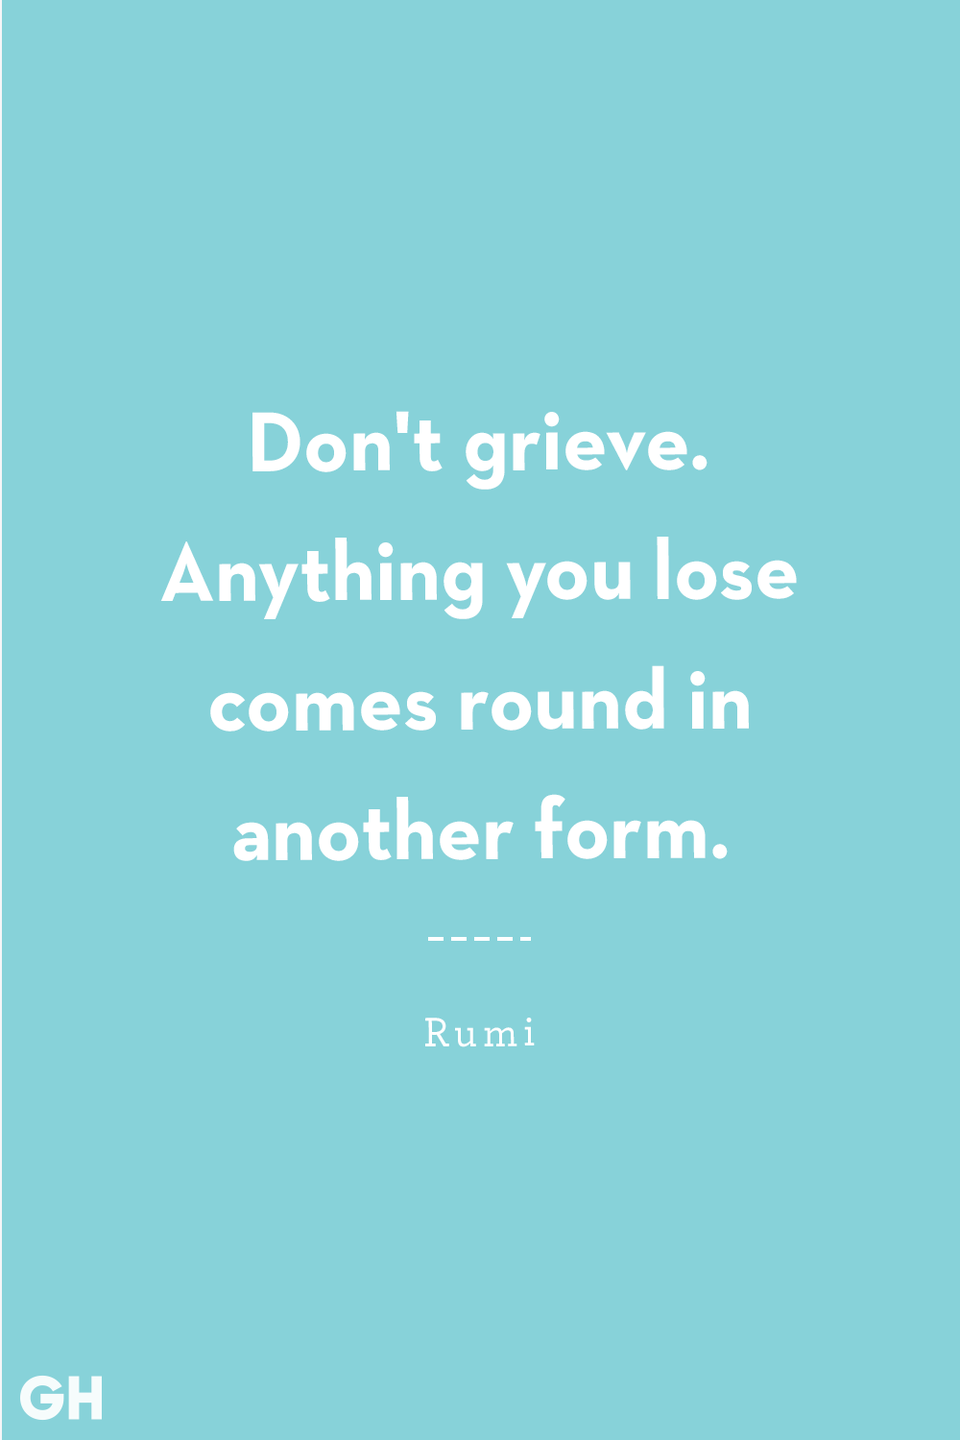 <p>Don't grieve. Anything you lose comes round in another form.</p>